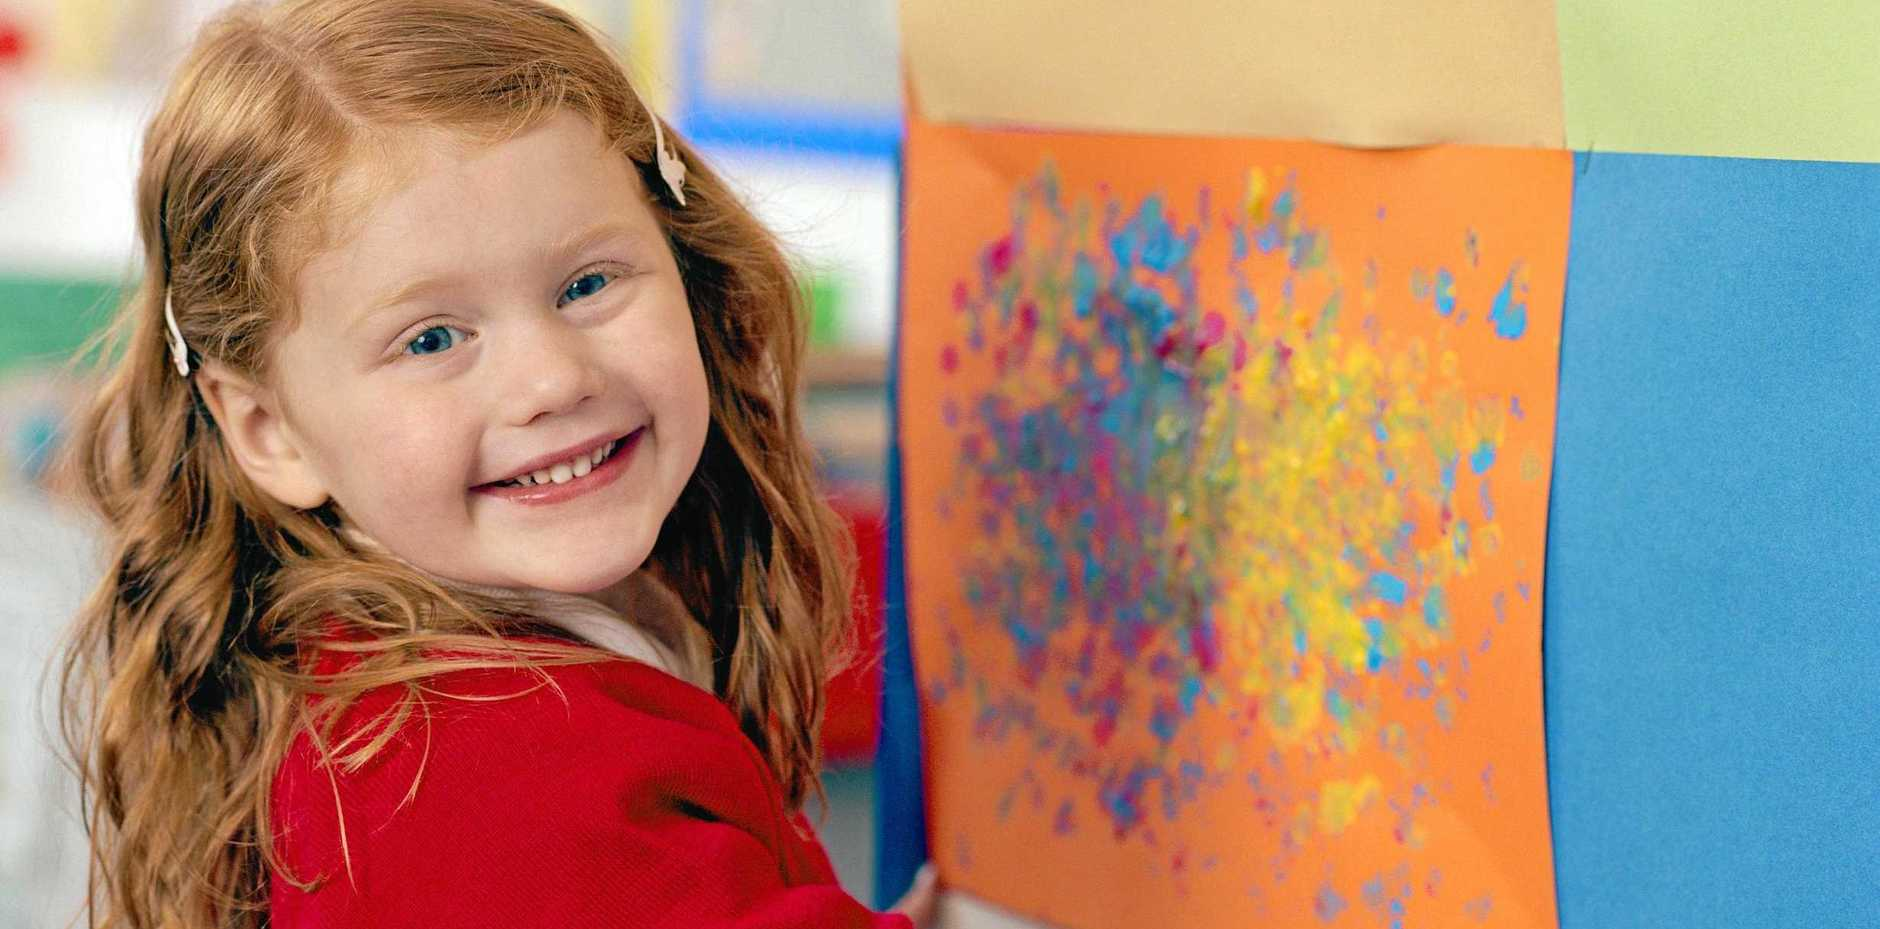 TAKE CARE: Nearly 100 childcare centres in NSW reported outbreaks of gastro in August.